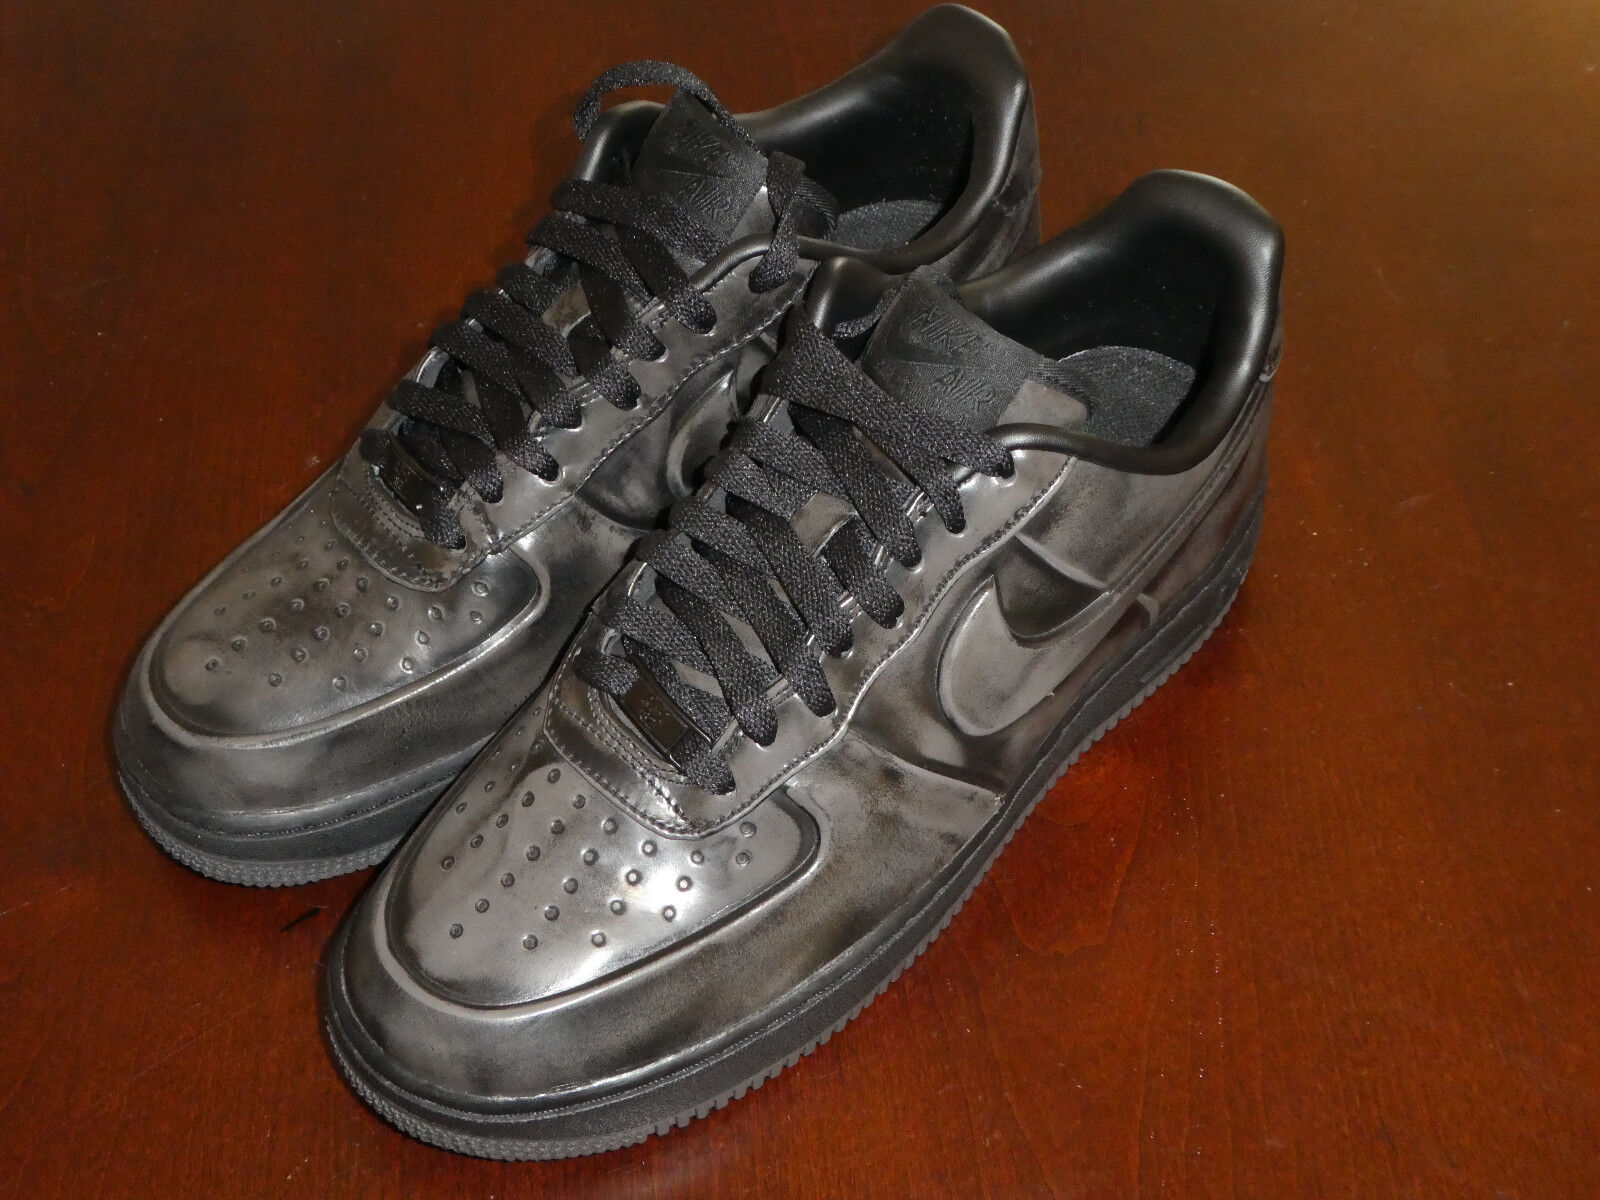 Nike Air Force 1 One VT SPRM Supreme mens shoes 472514 001 new size 8